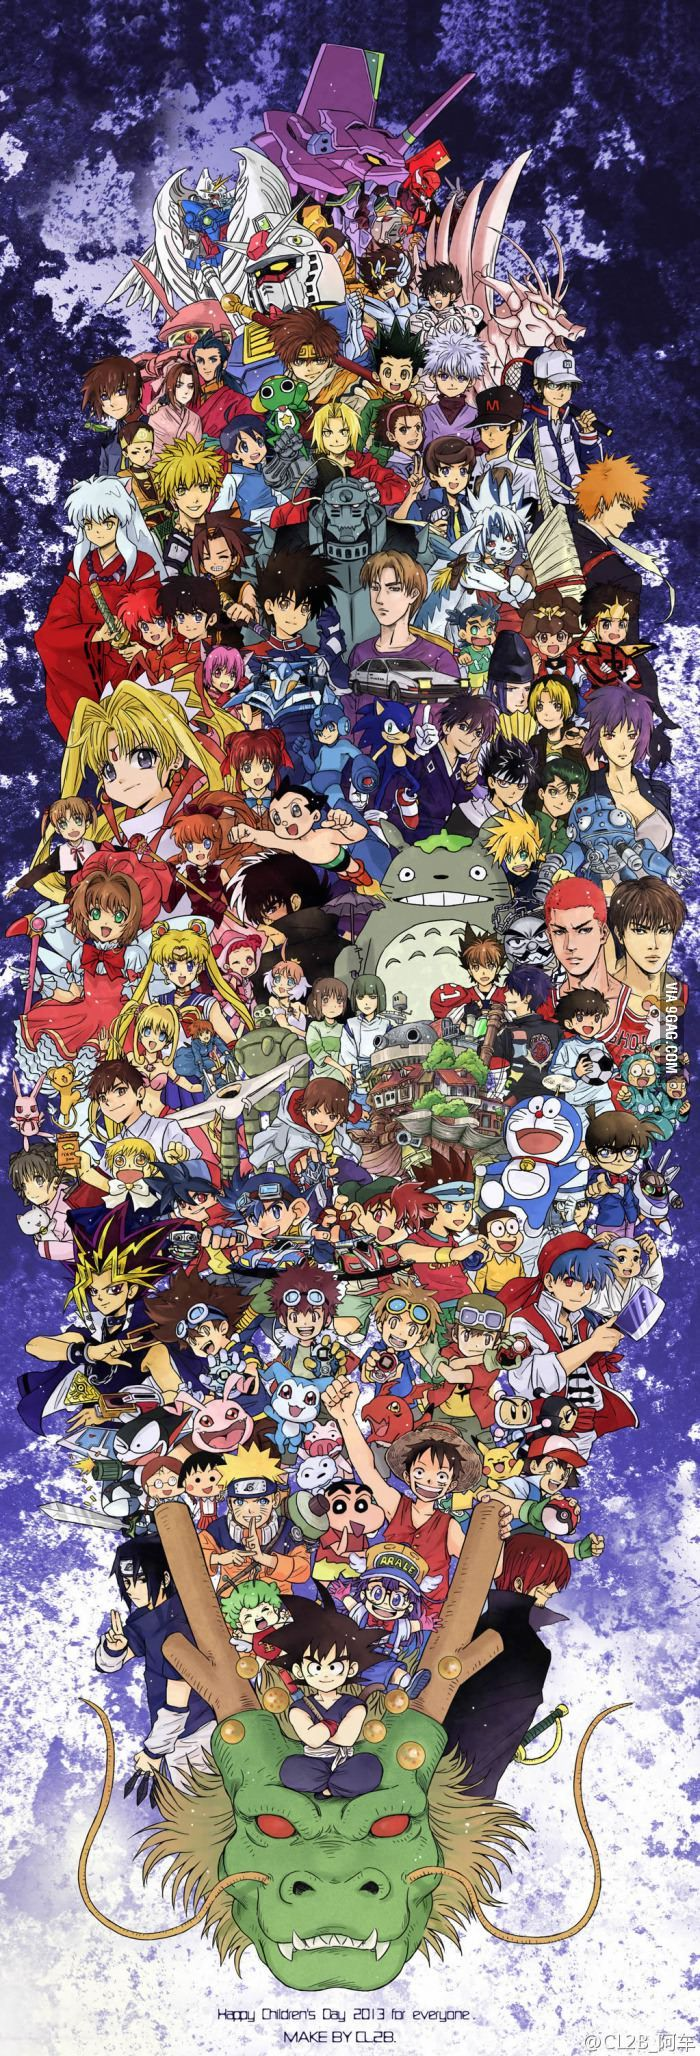 Anything anime anywhere is here.  // If this is true, why are Sonic and Mega Man there and where are Yoroiden Samurai Troopers, Gravitation, and Weiss Kreuz?